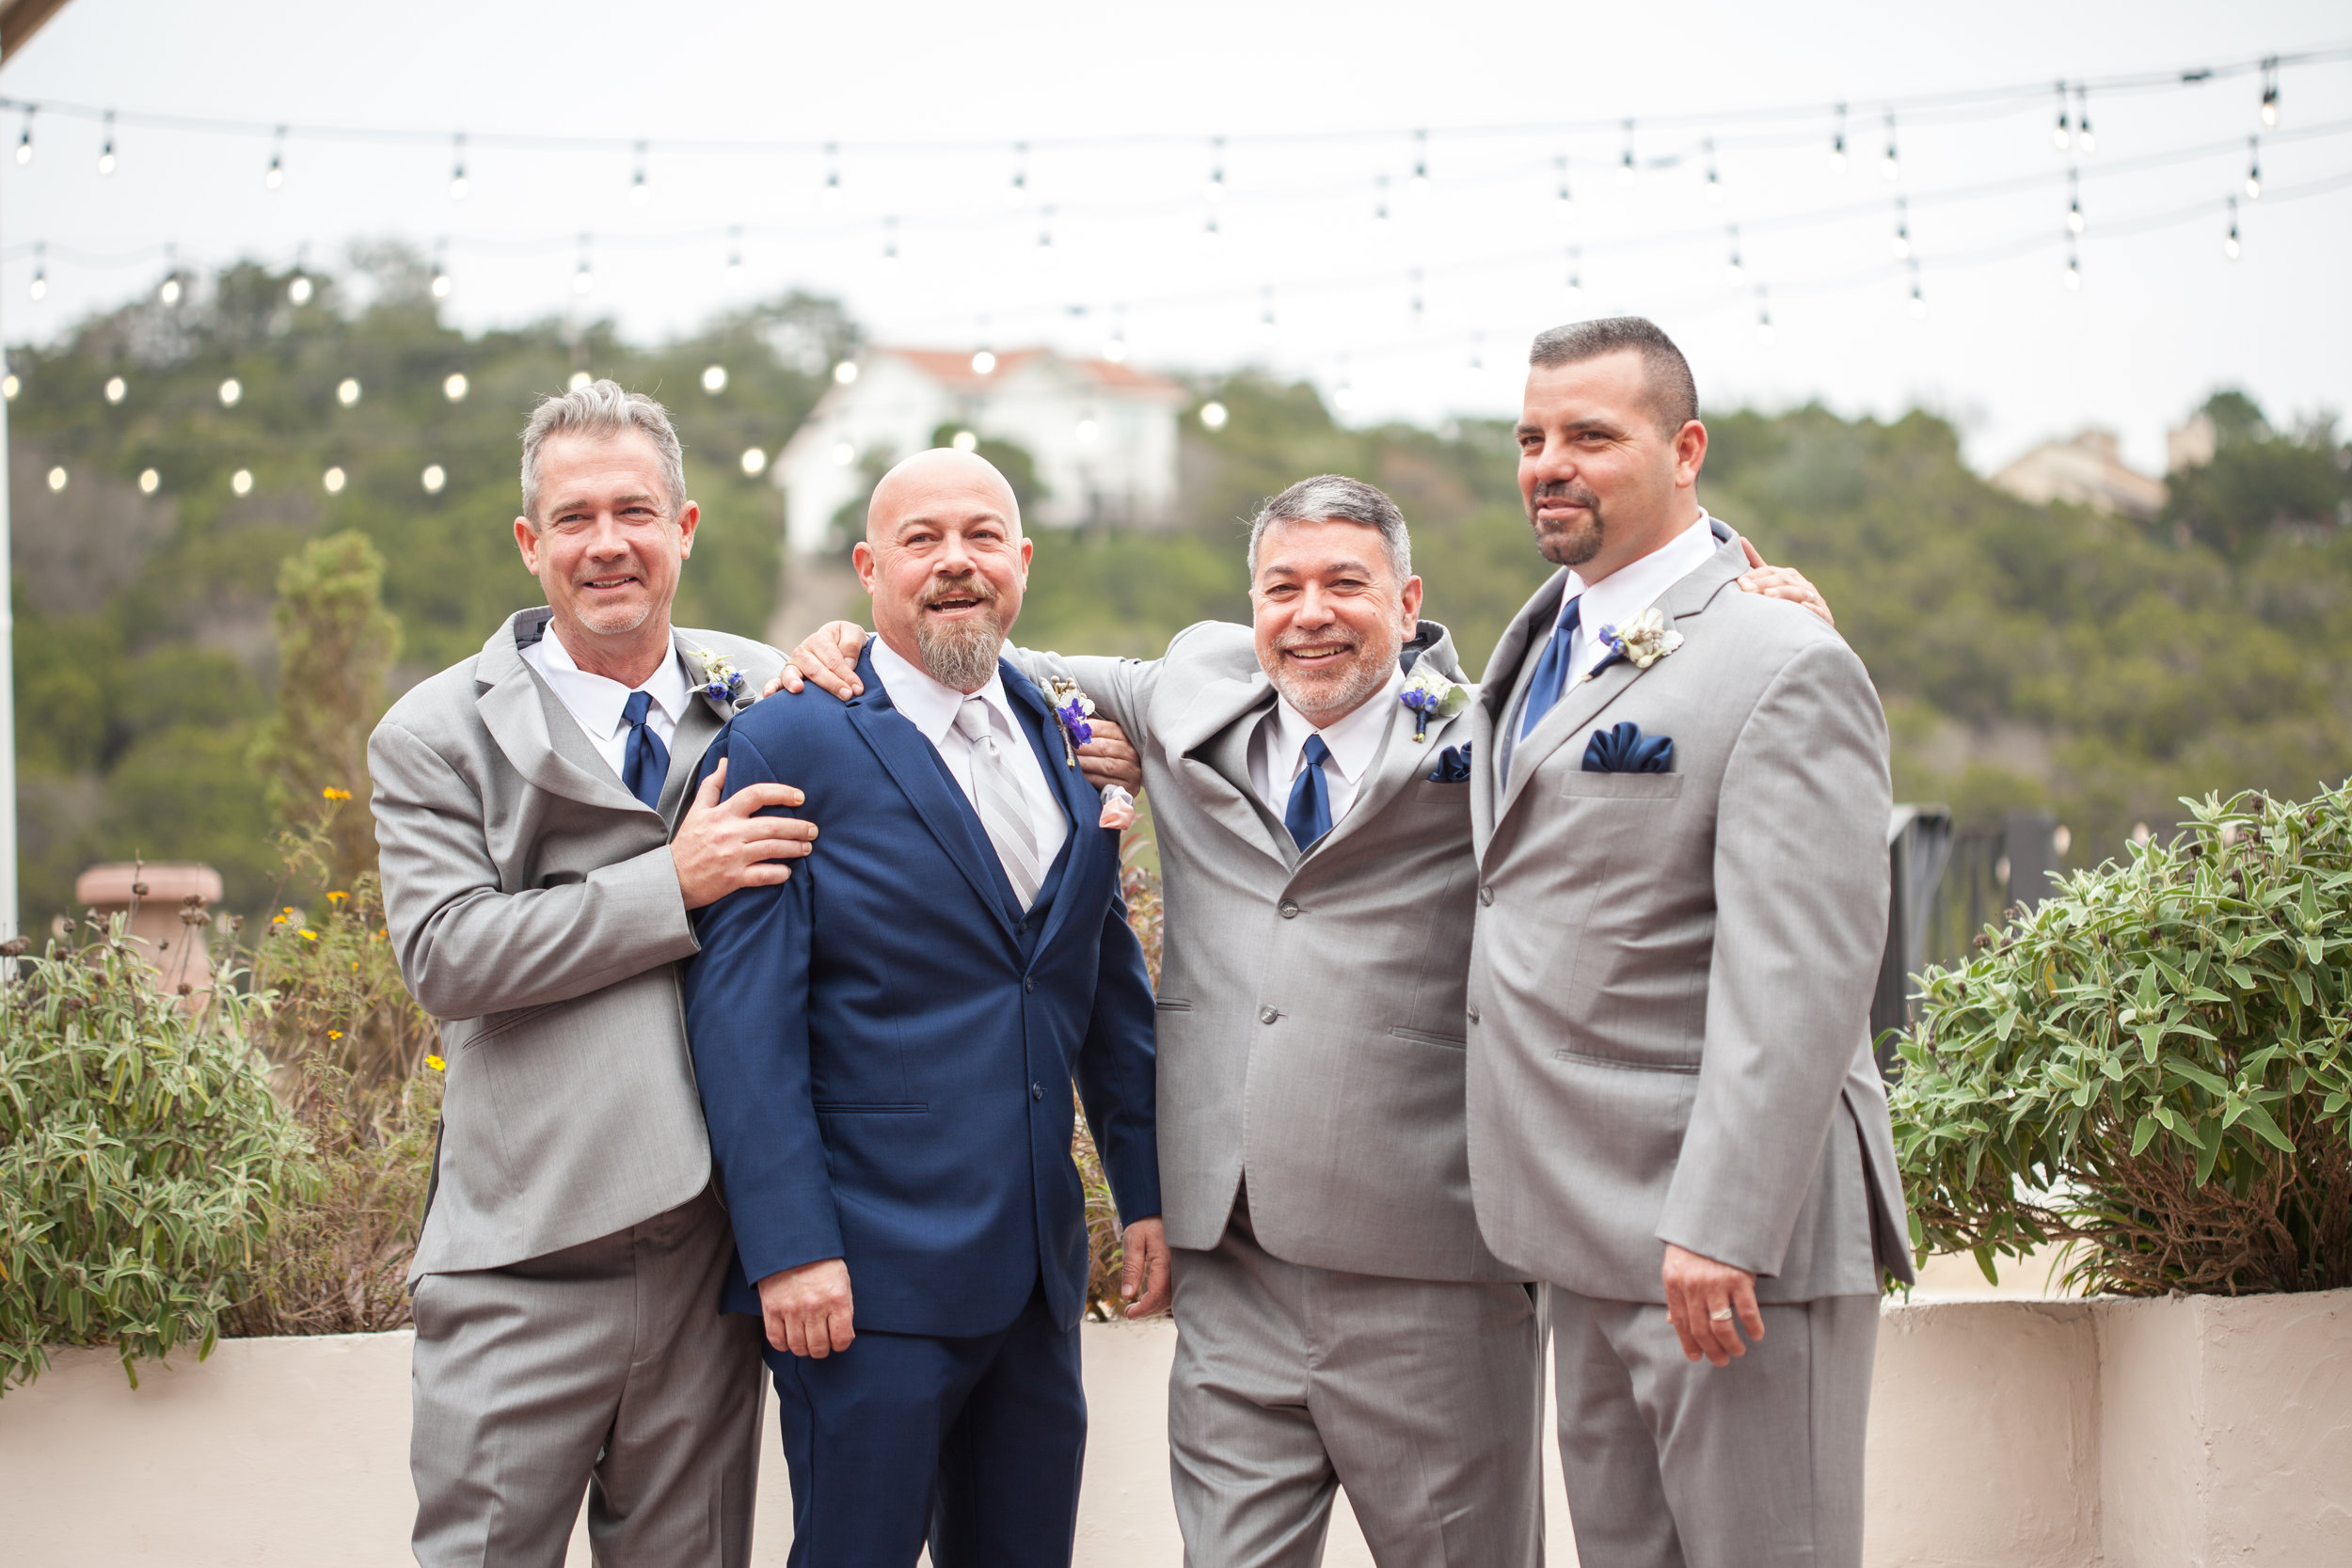 Groomsman Texas wedding